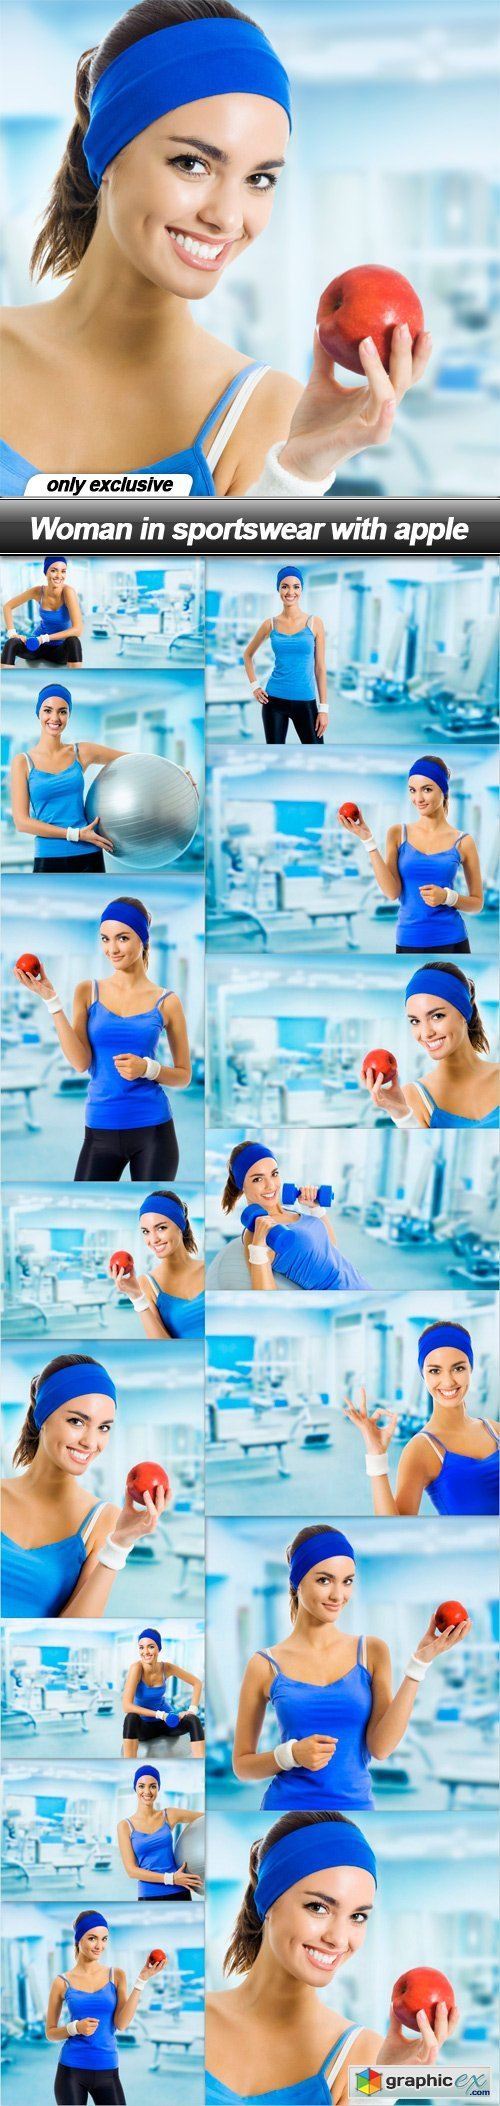 Woman in sportswear with apple - 15 UHQ JPEG